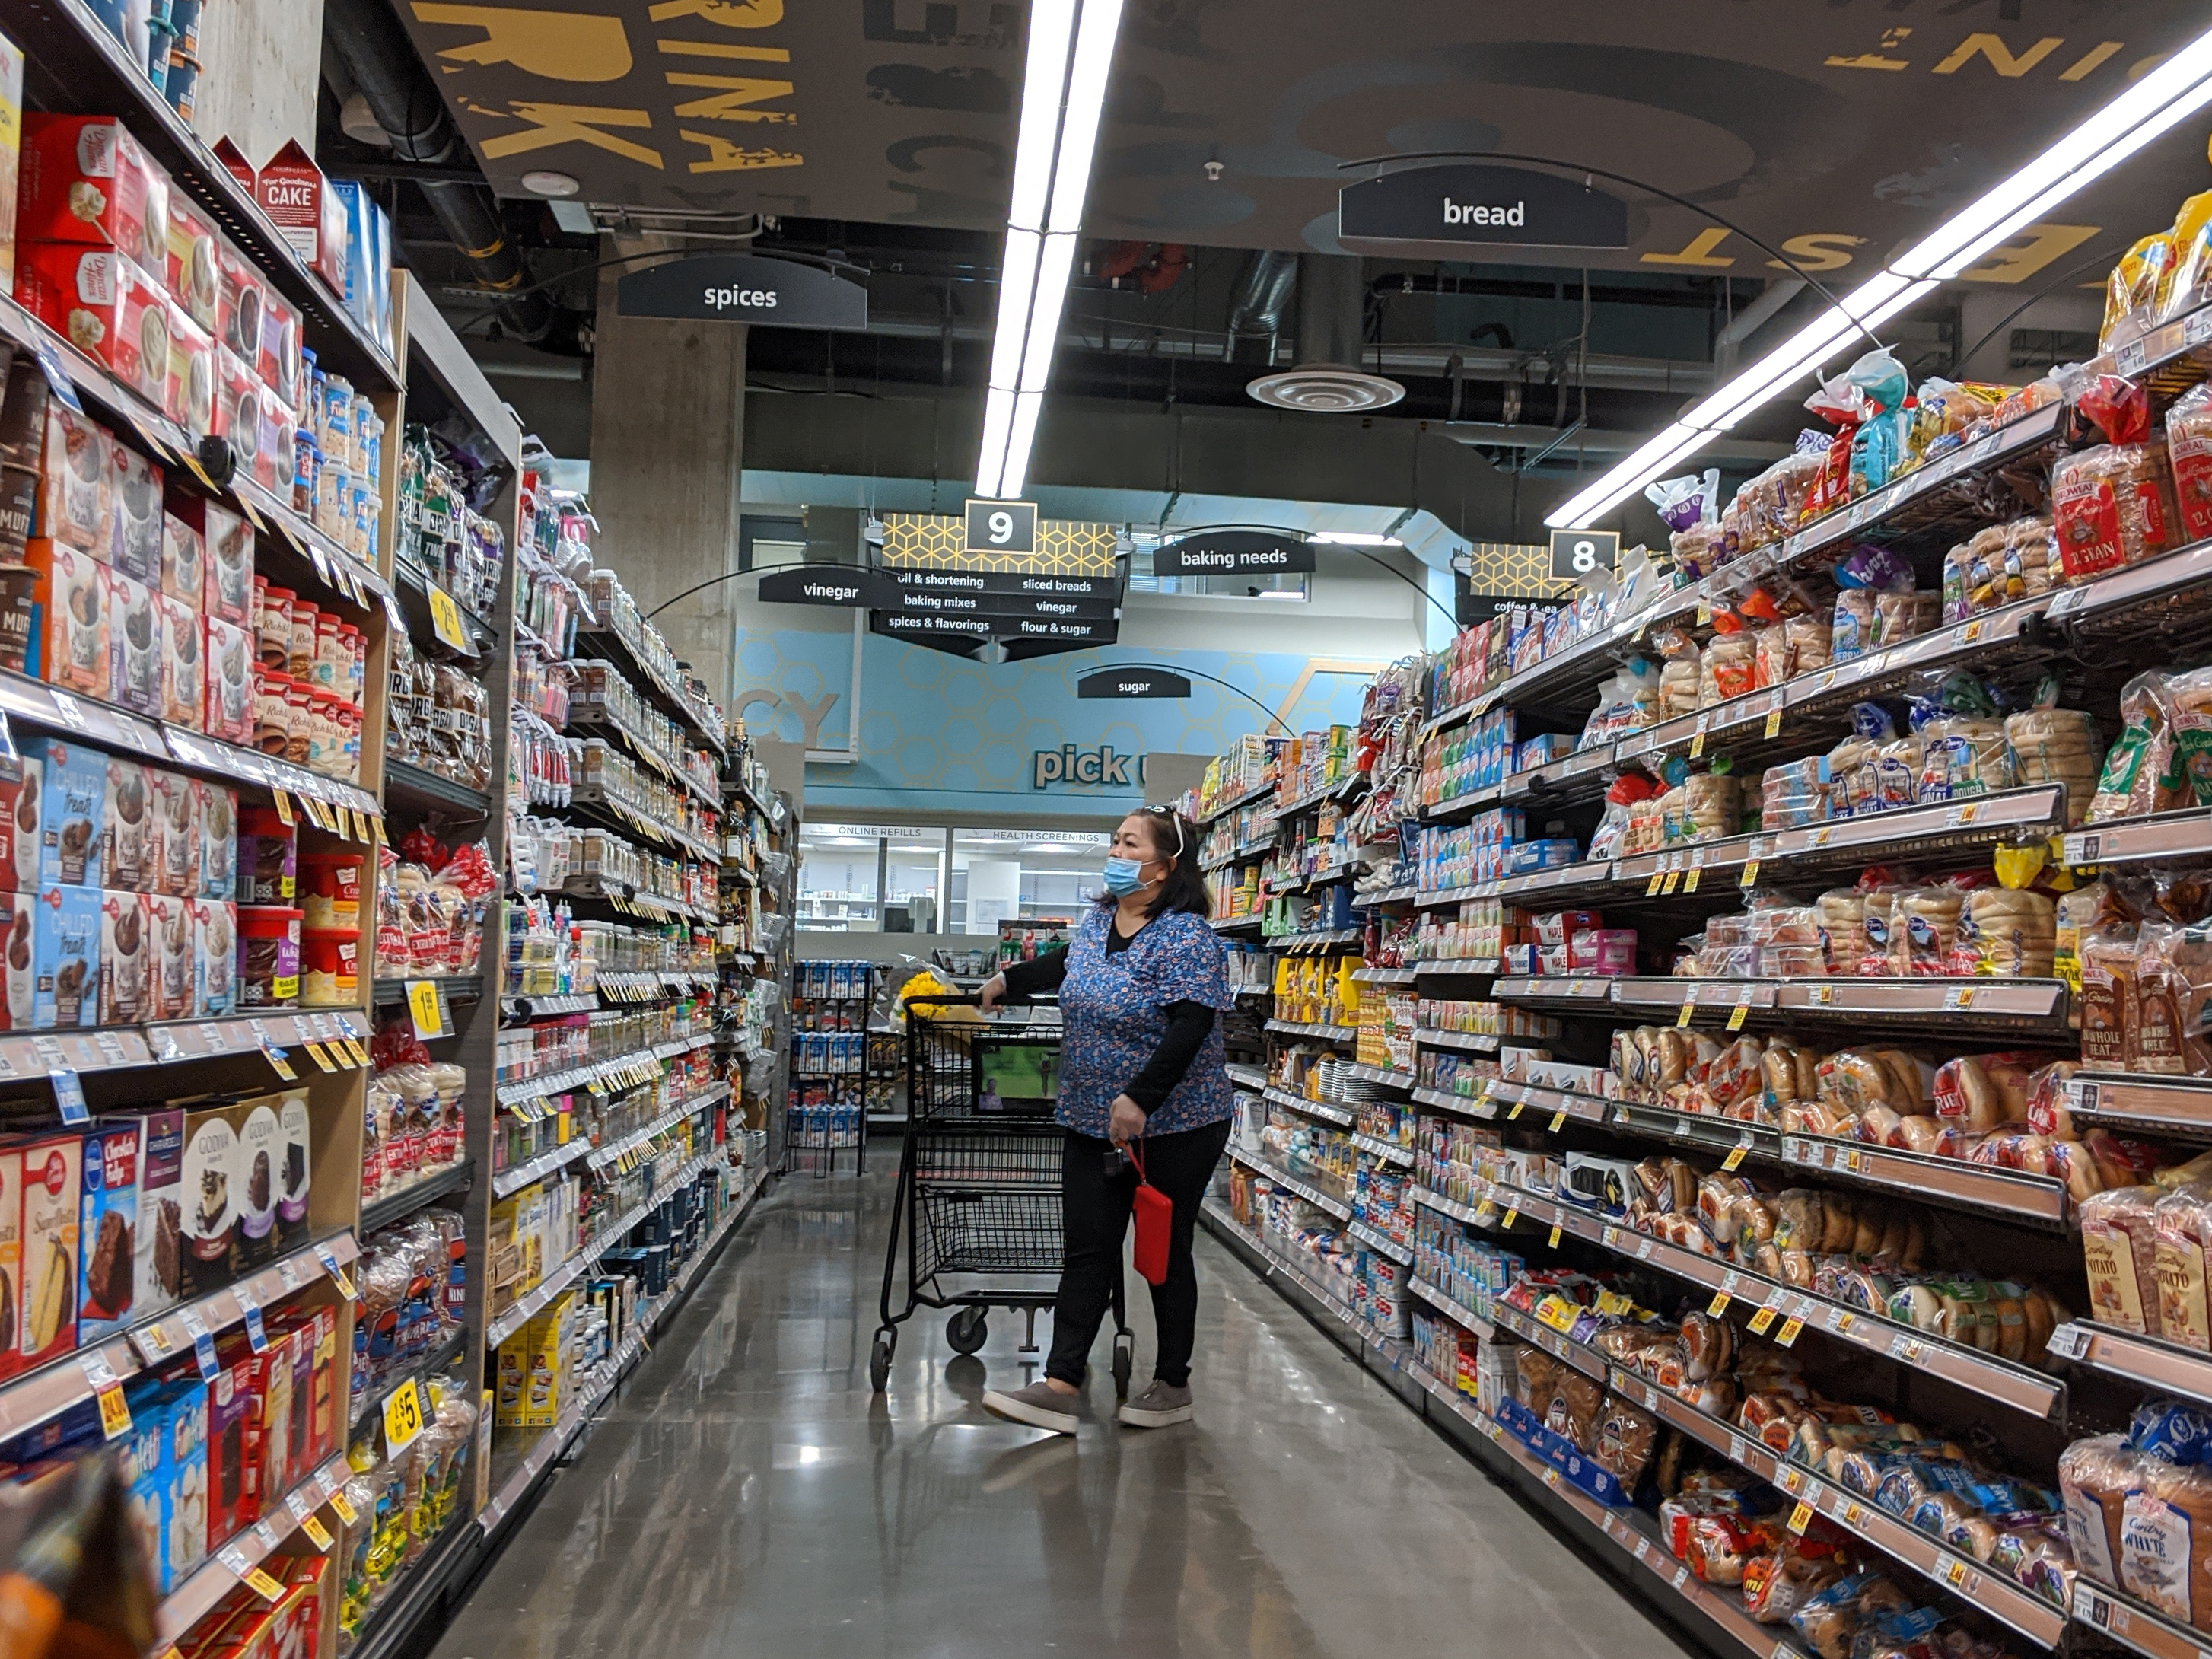 A woman wearing a blue mask stands in the center of an aisle with a shopping cart.